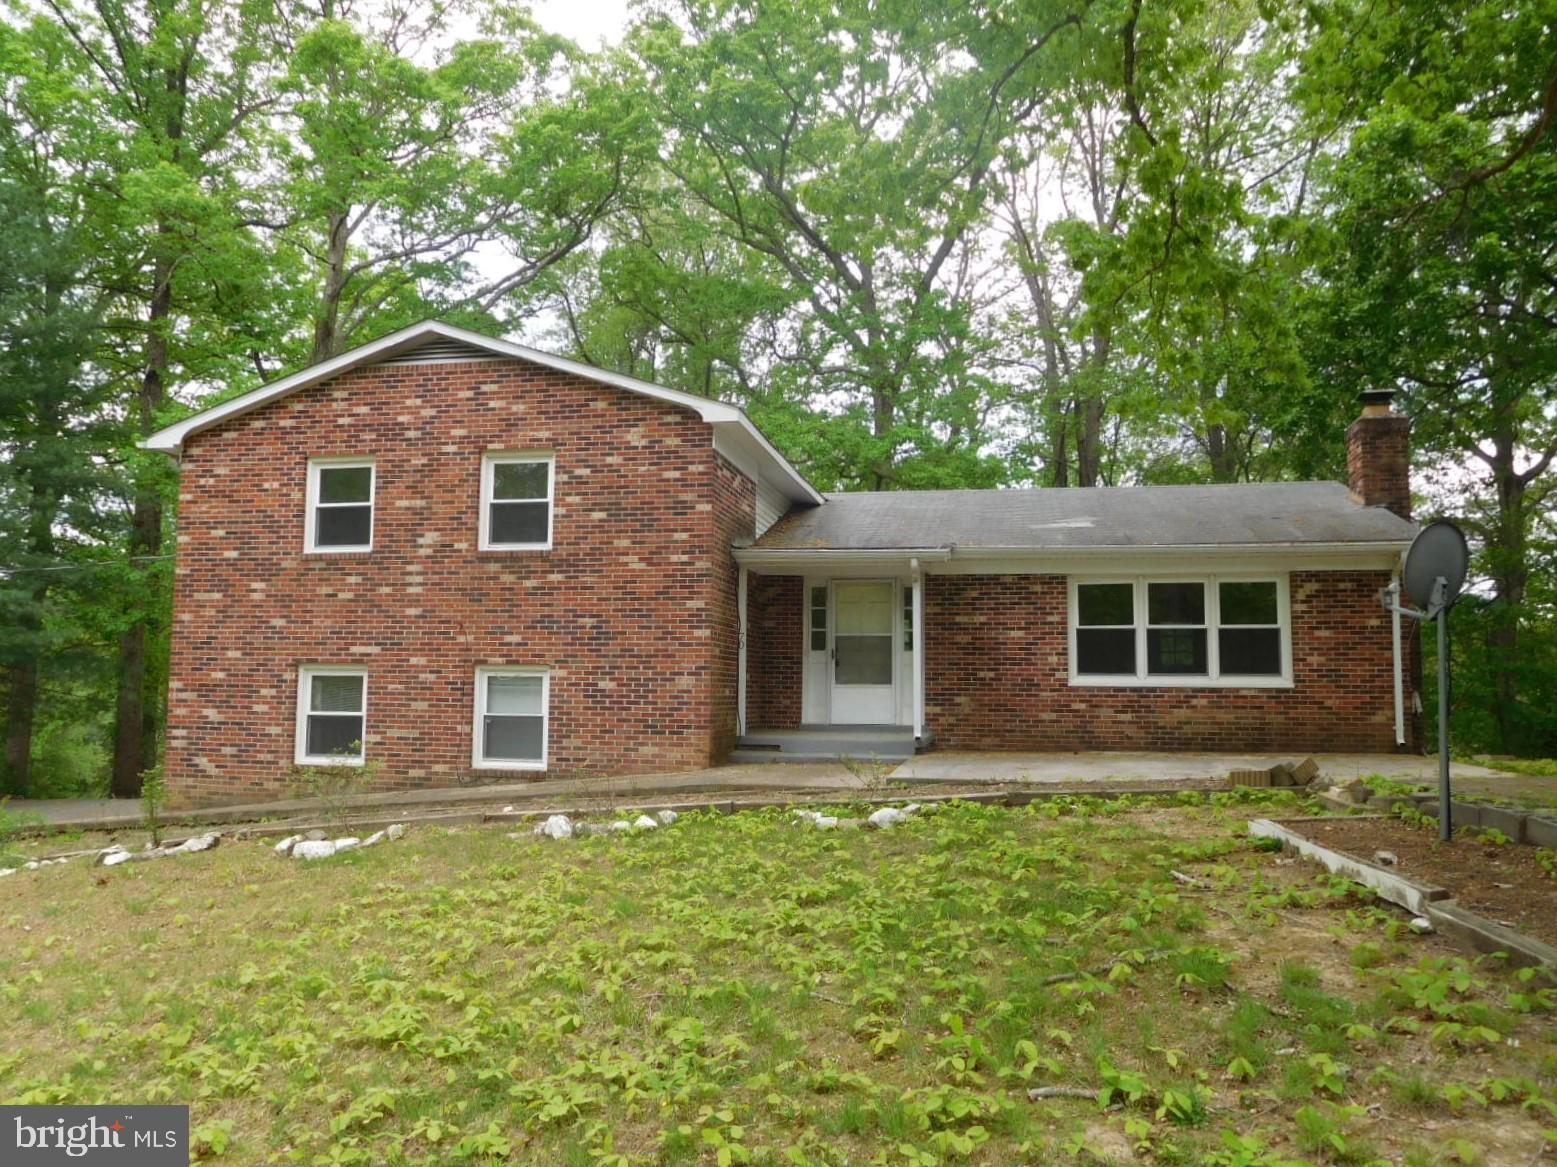 70 Winding Creek Rd, Stafford, VA, 22554